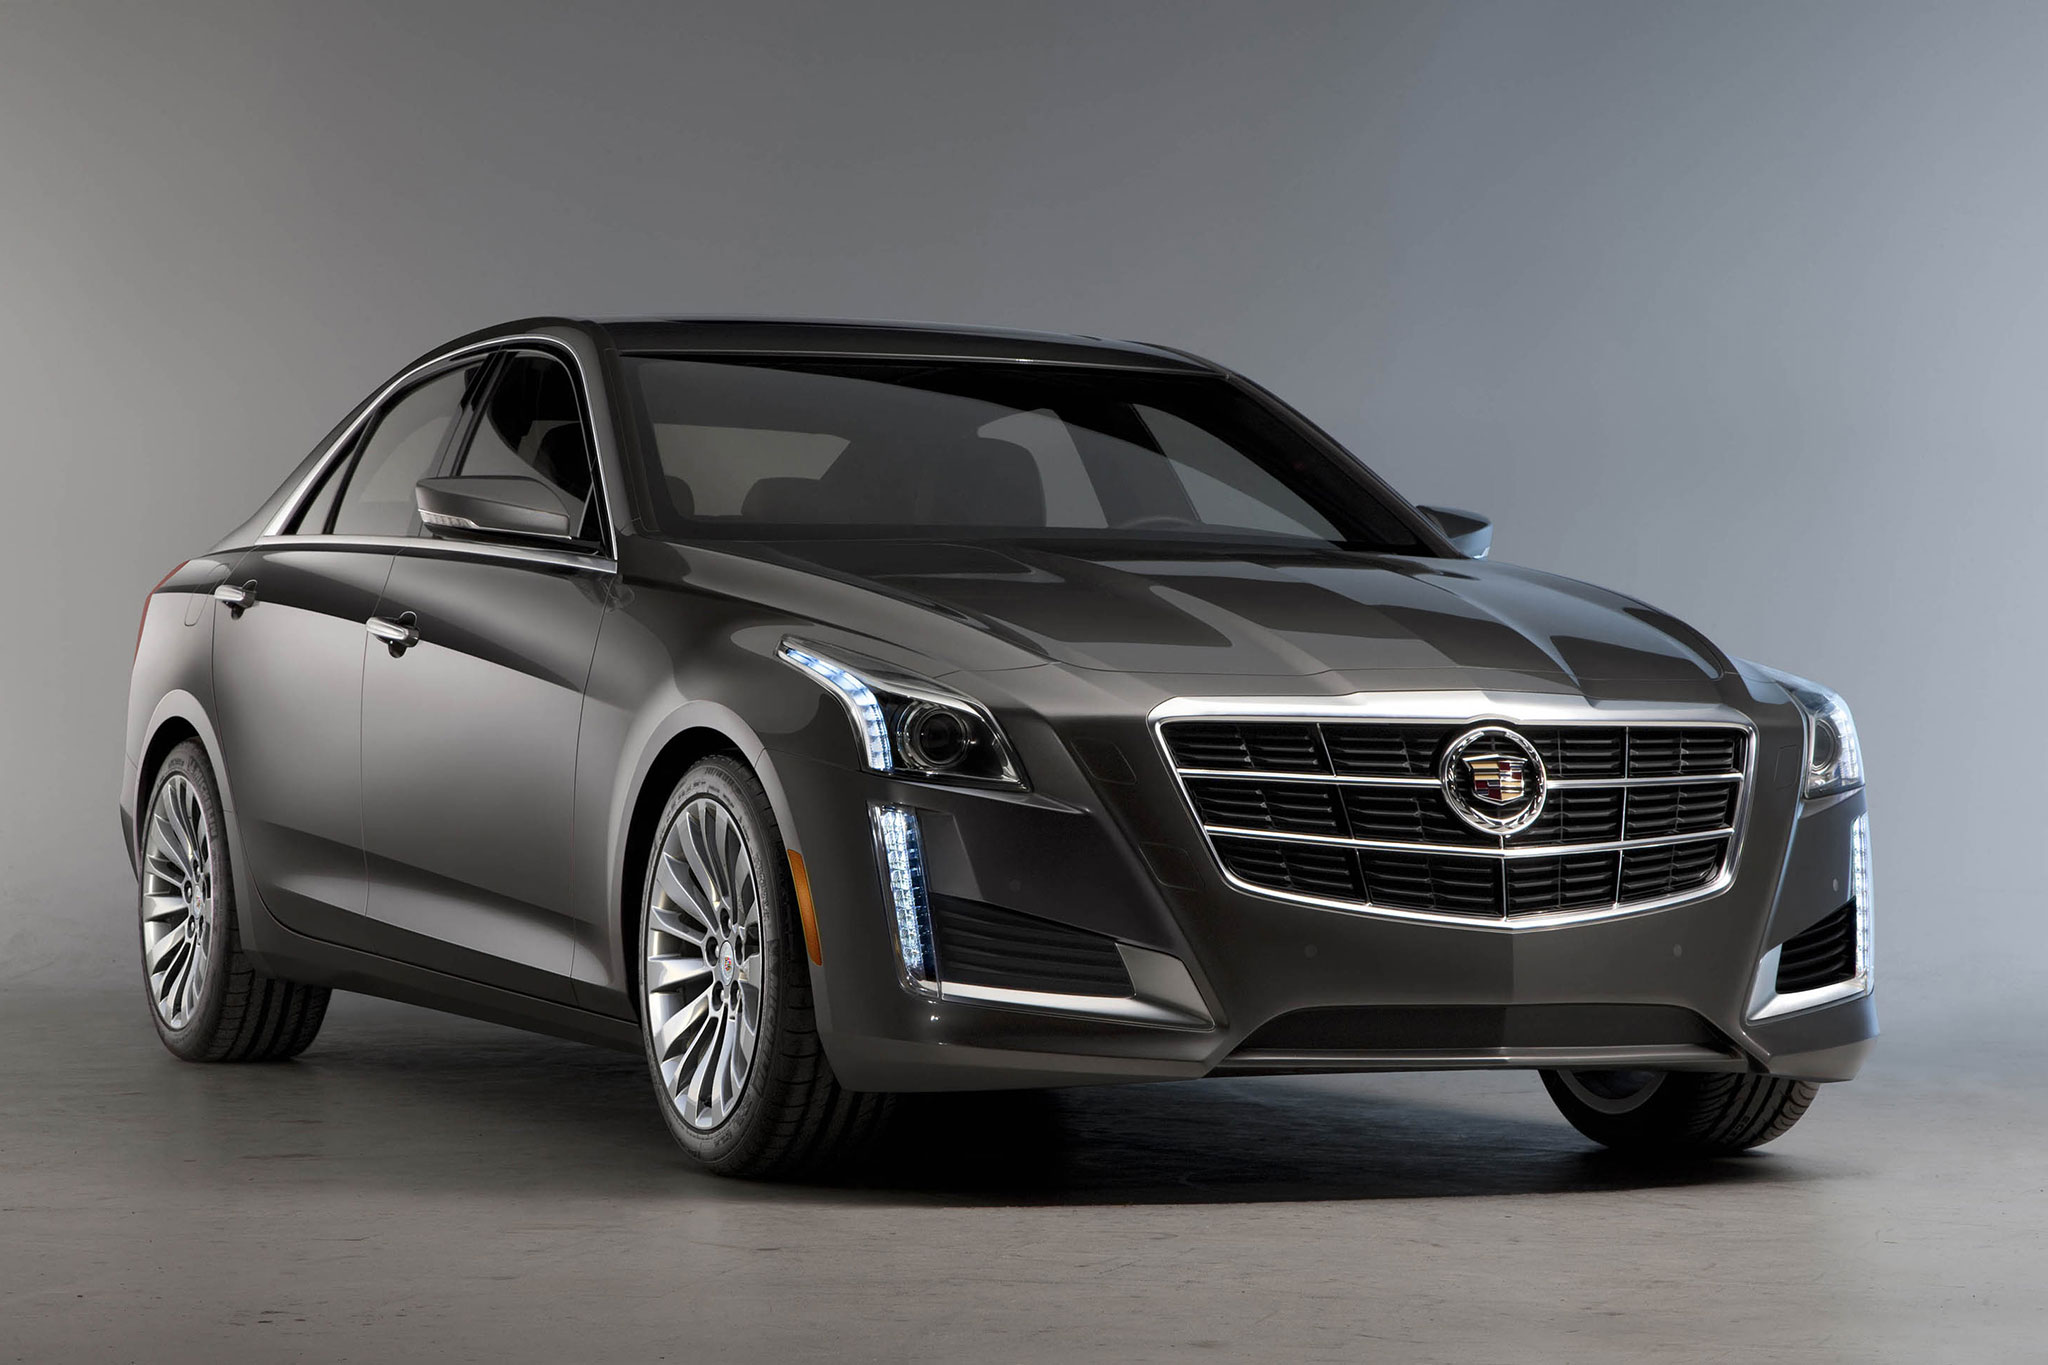 2014 Cadillac Cts 2014 Automobile Of The Year Finalist